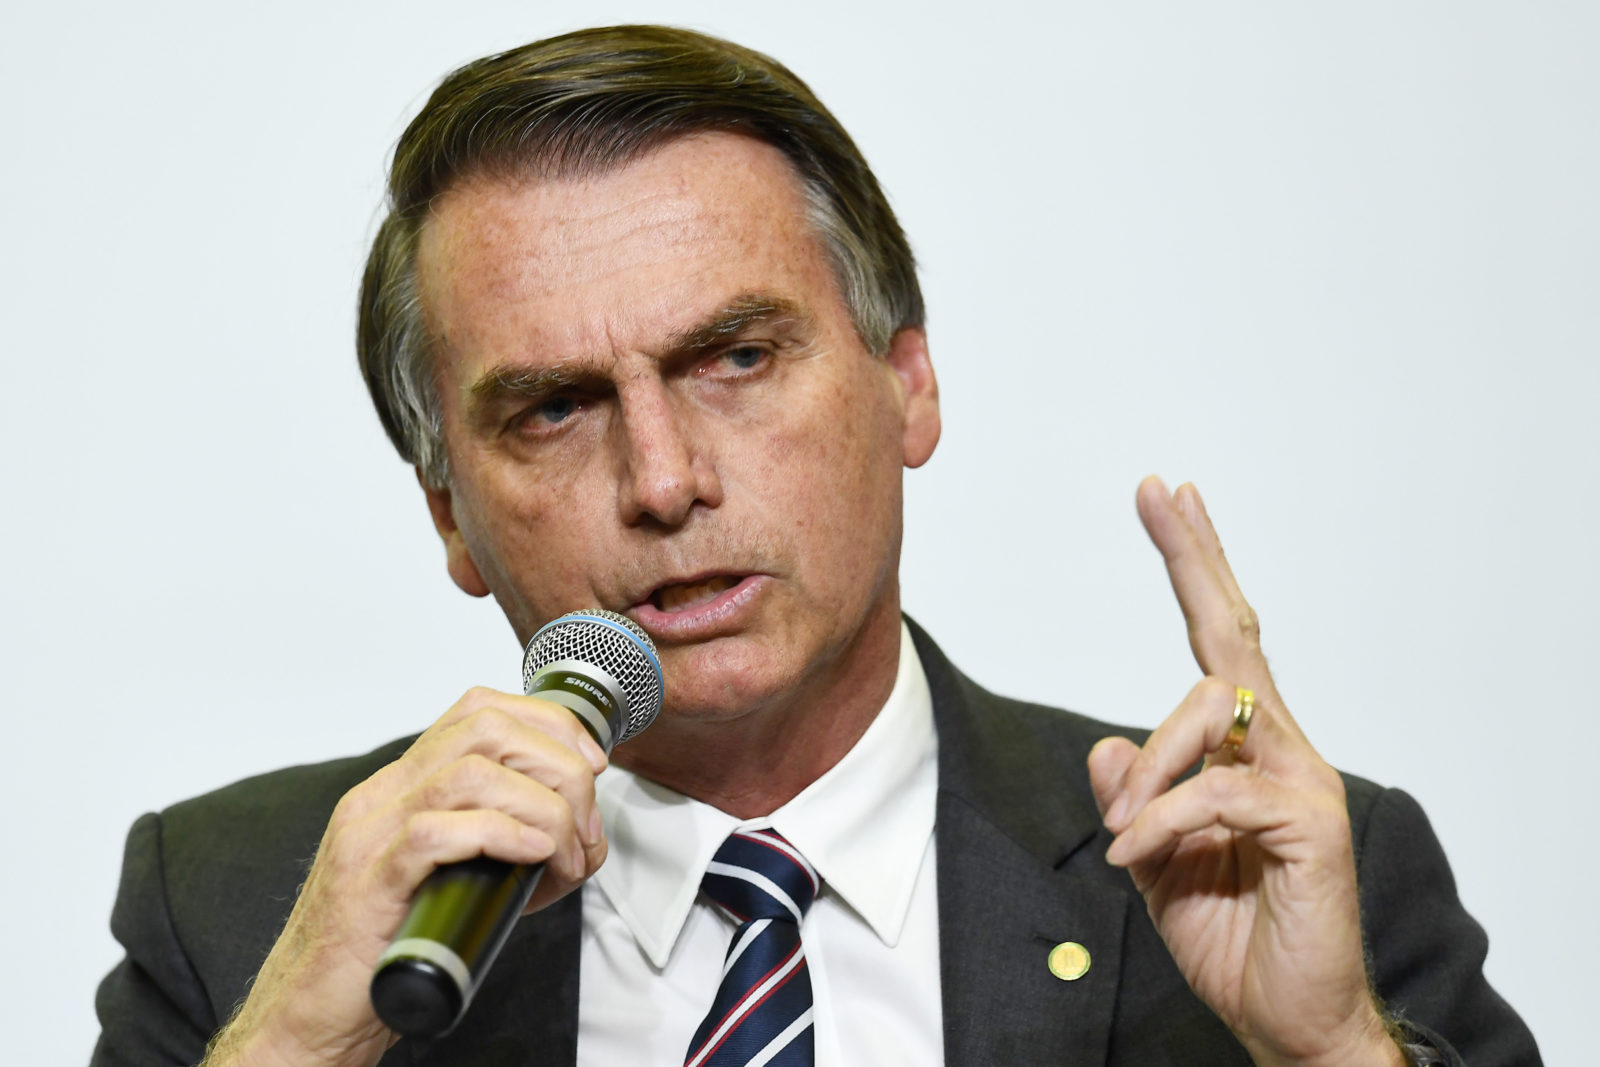 Jair Bolsonaro, presidential candidate for the Social Liberal Party, attends an interview for Correio Brazilianse newspaper in Brasilia on June 6, 2018. - Brazil holds general elections in October. (Photo by EVARISTO SA / AFP) LGBT+ rights (Photo credit should read EVARISTO SA/AFP/Getty Images)